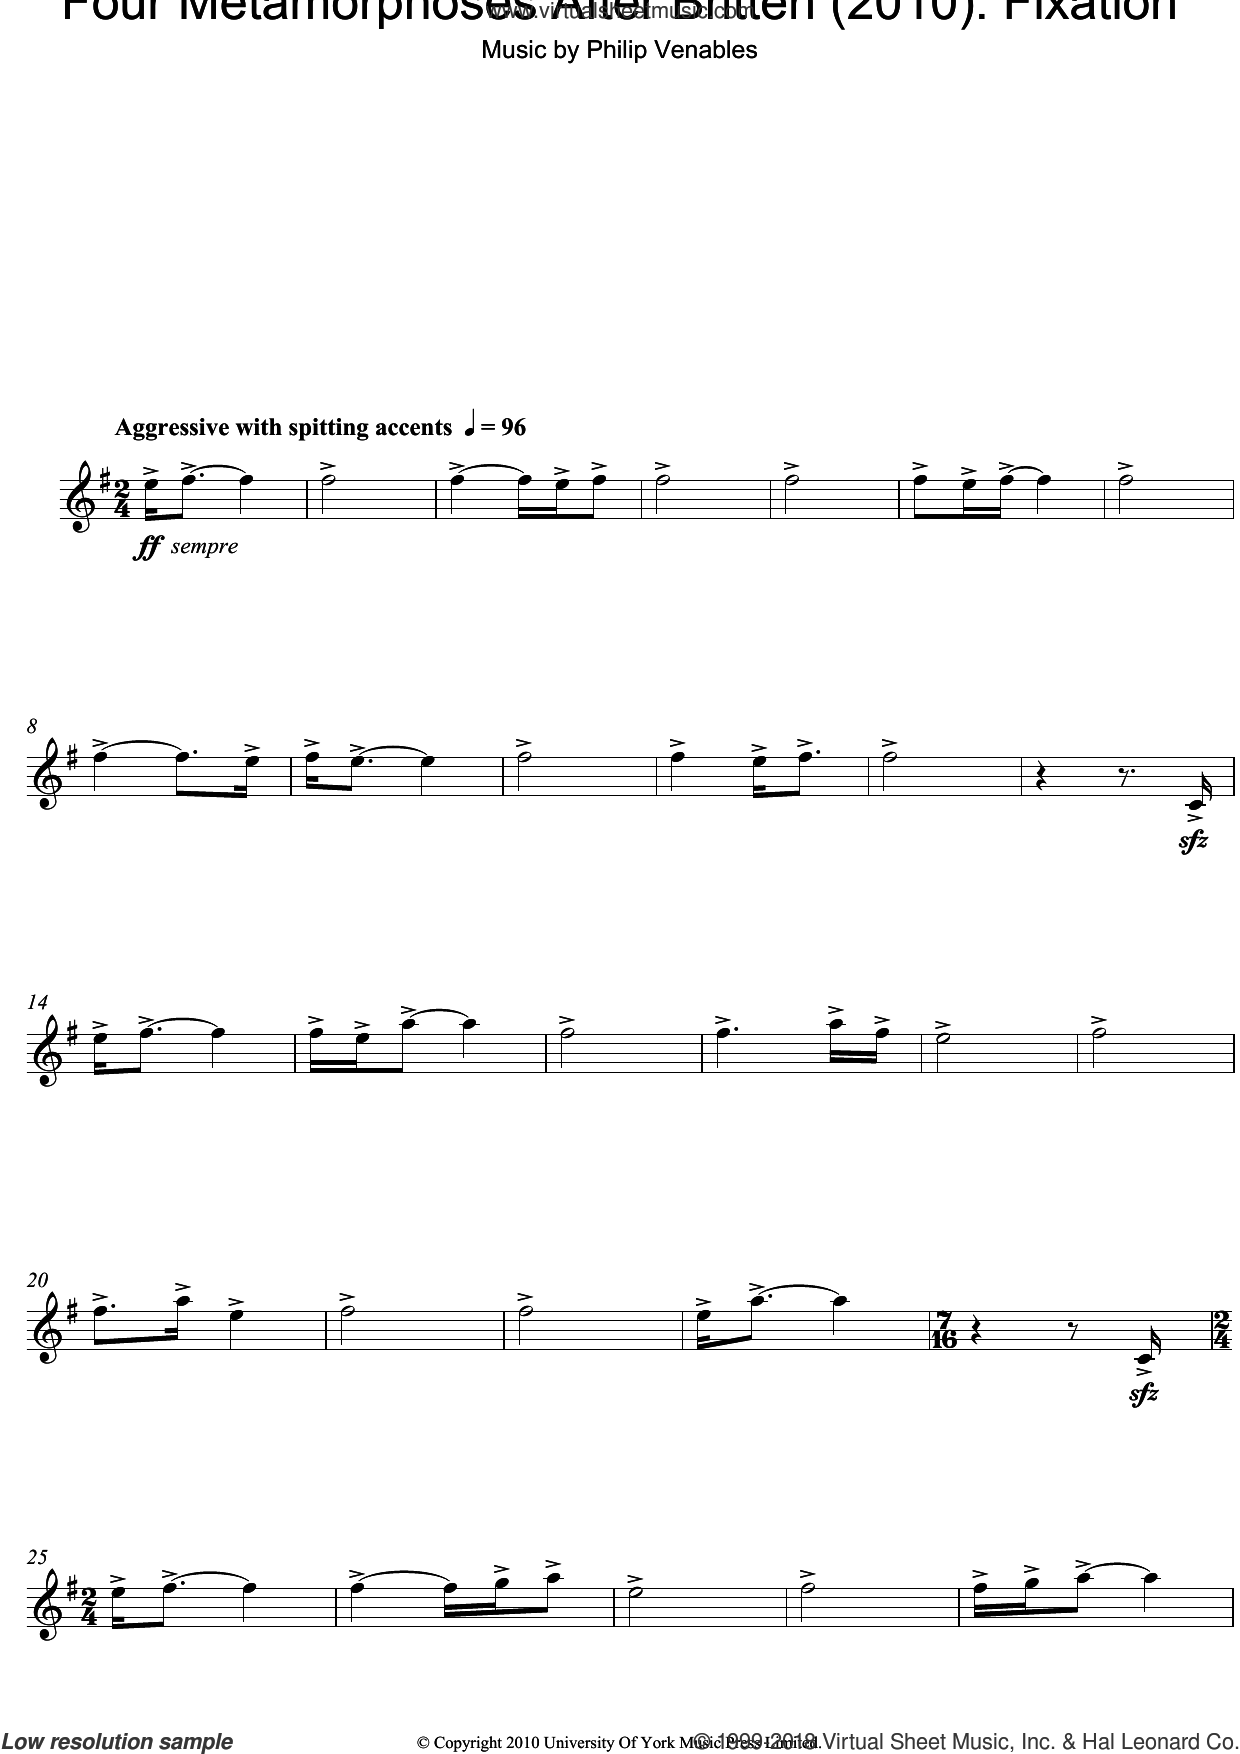 Four Metamorphoses After Britten (2010): Fixation sheet music for oboe solo by Philip Venables, classical score, intermediate skill level